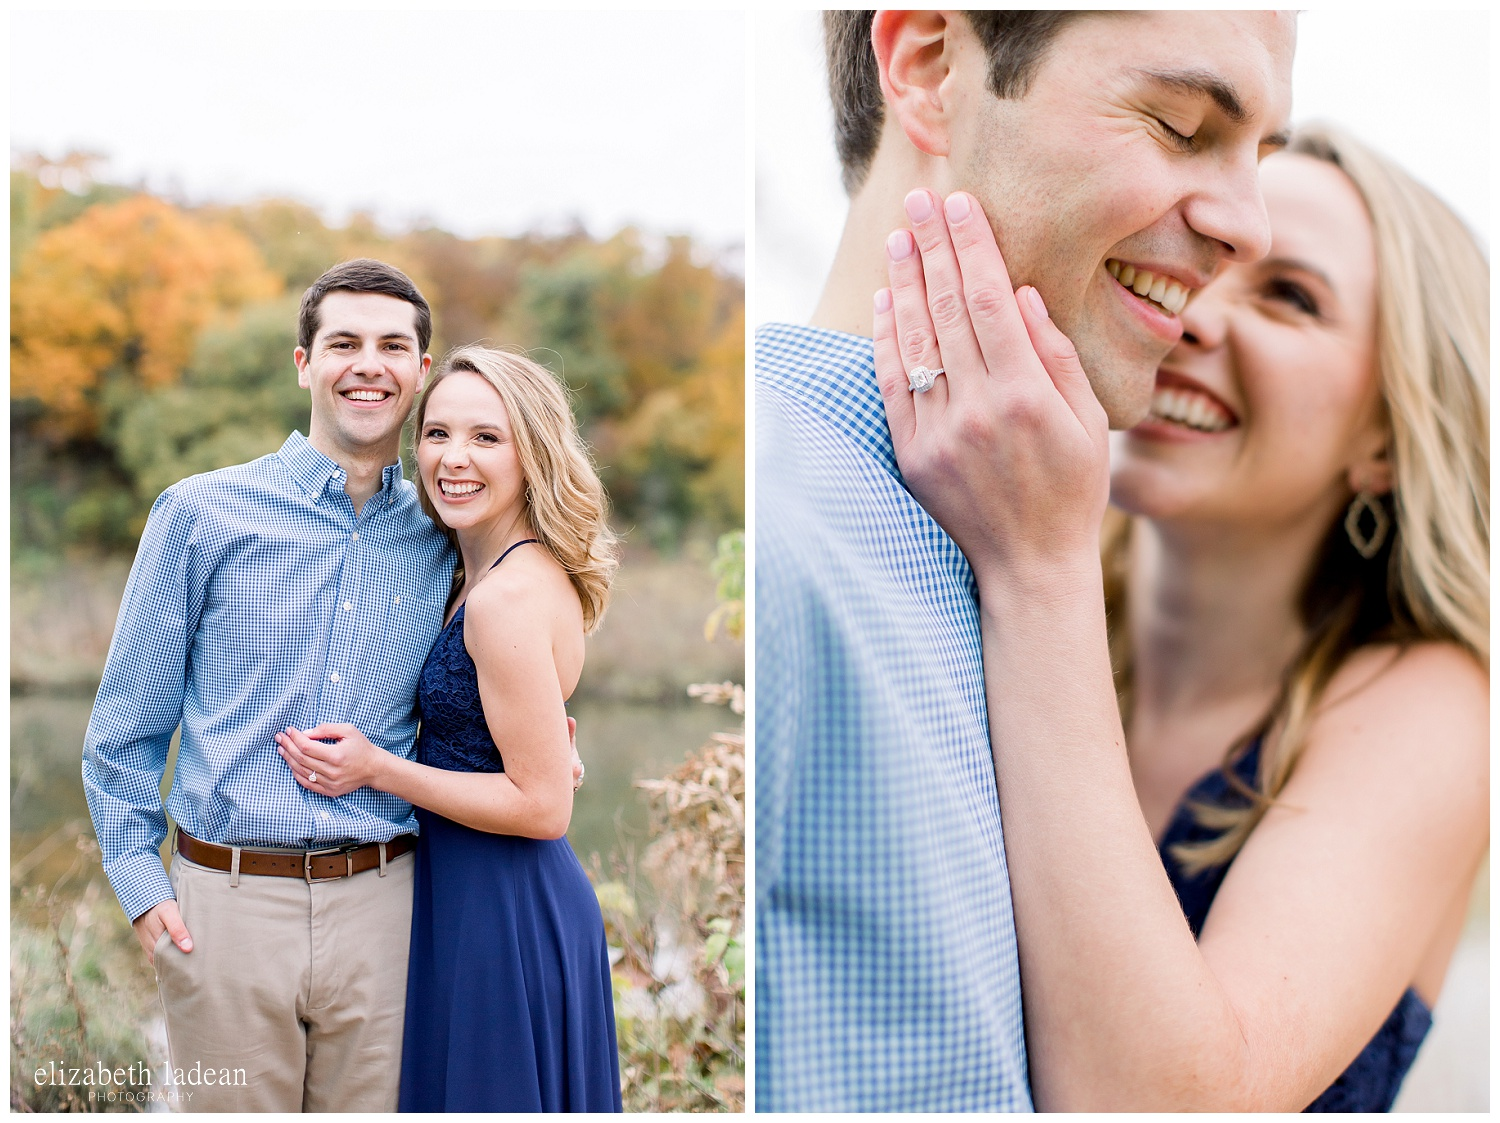 Colorful-Fall-Engagement-Photos-in-KC-C+B-2018-elizabeth-ladean-photography-photo_1803.jpg